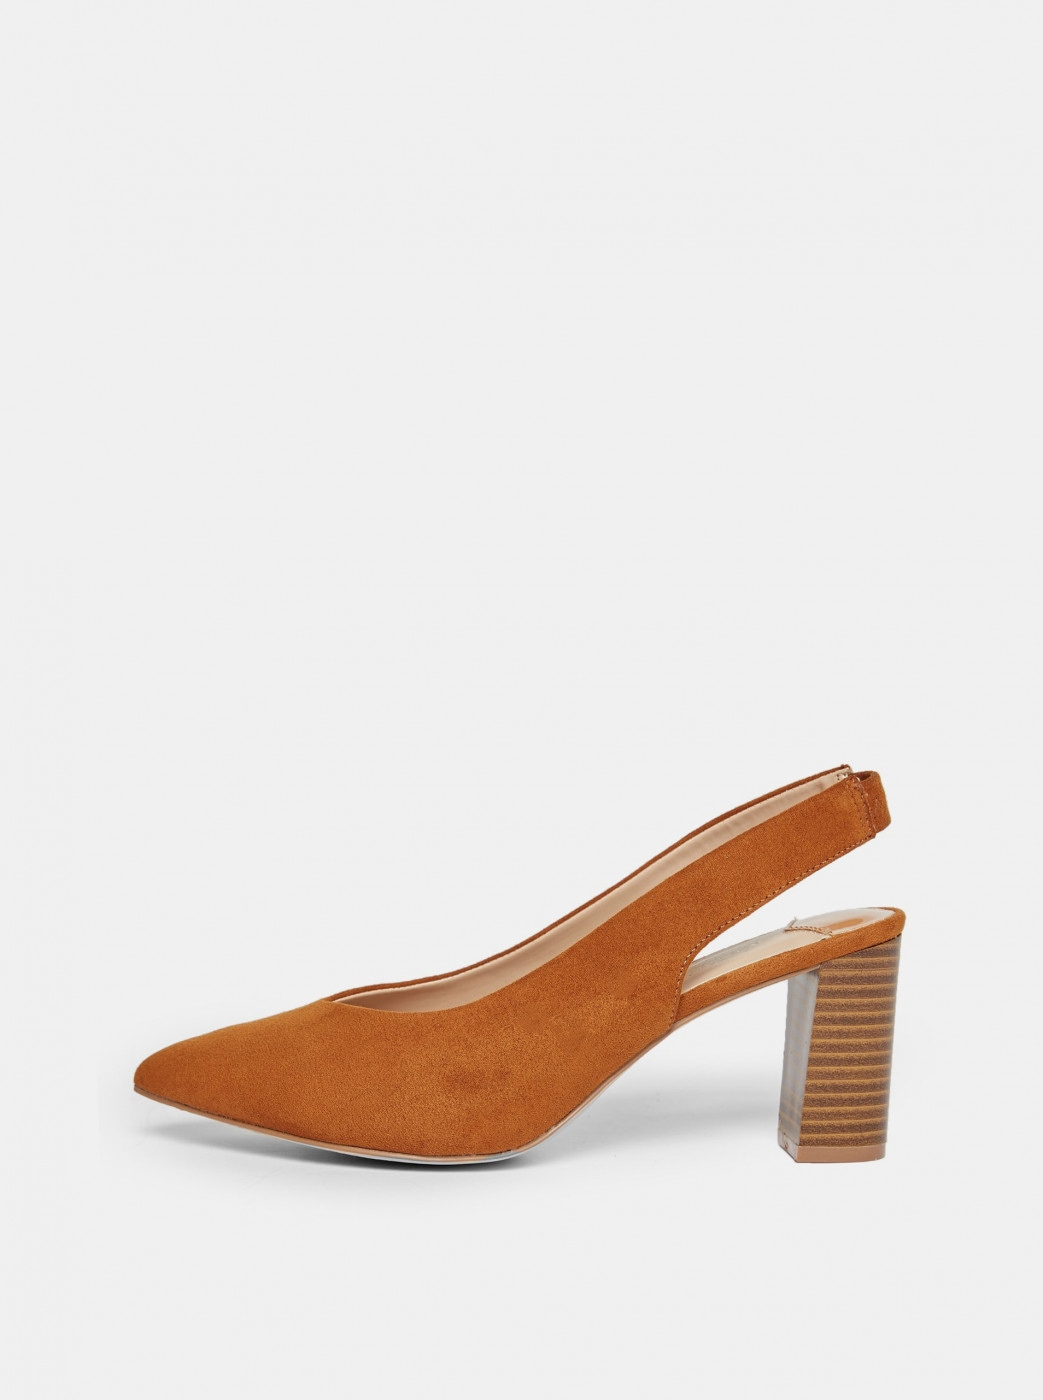 Dorothy Perkins suede leather pumps